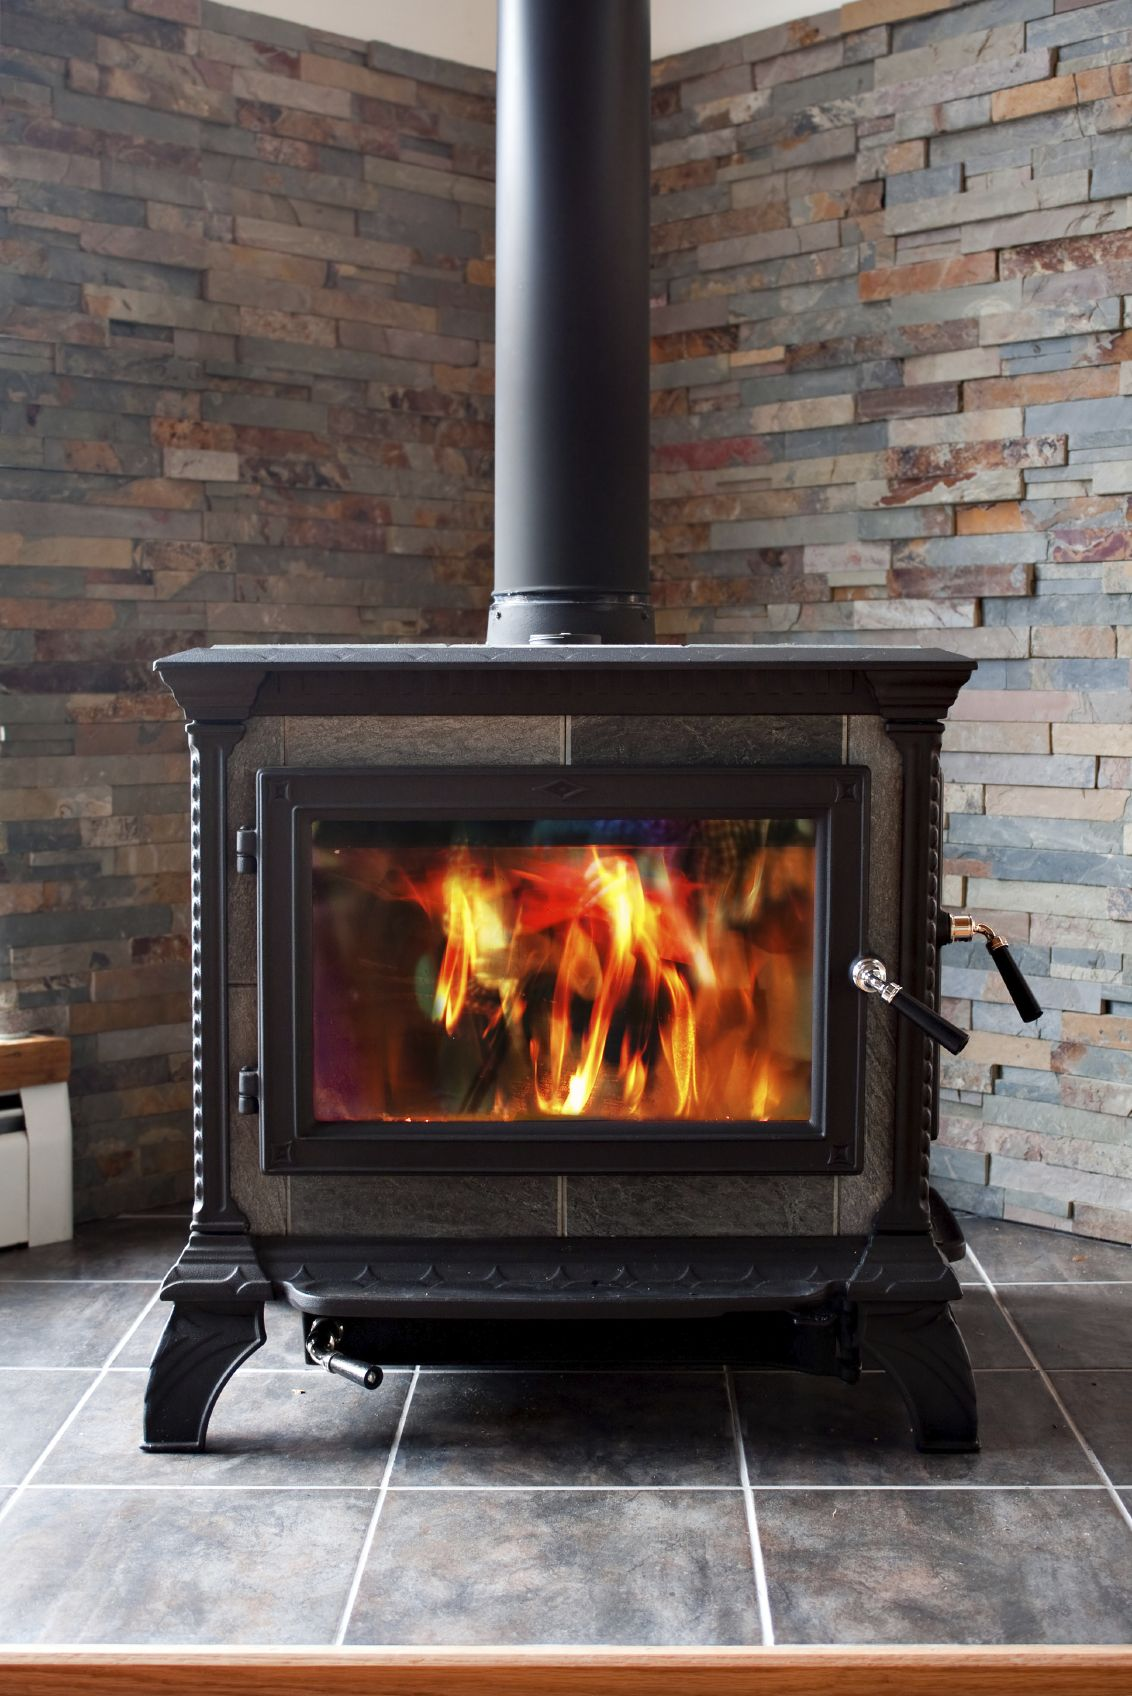 Turn Your Fireplace Into A Showpiece Wood Stove Wood Stove Fireplace Wood Stove Surround